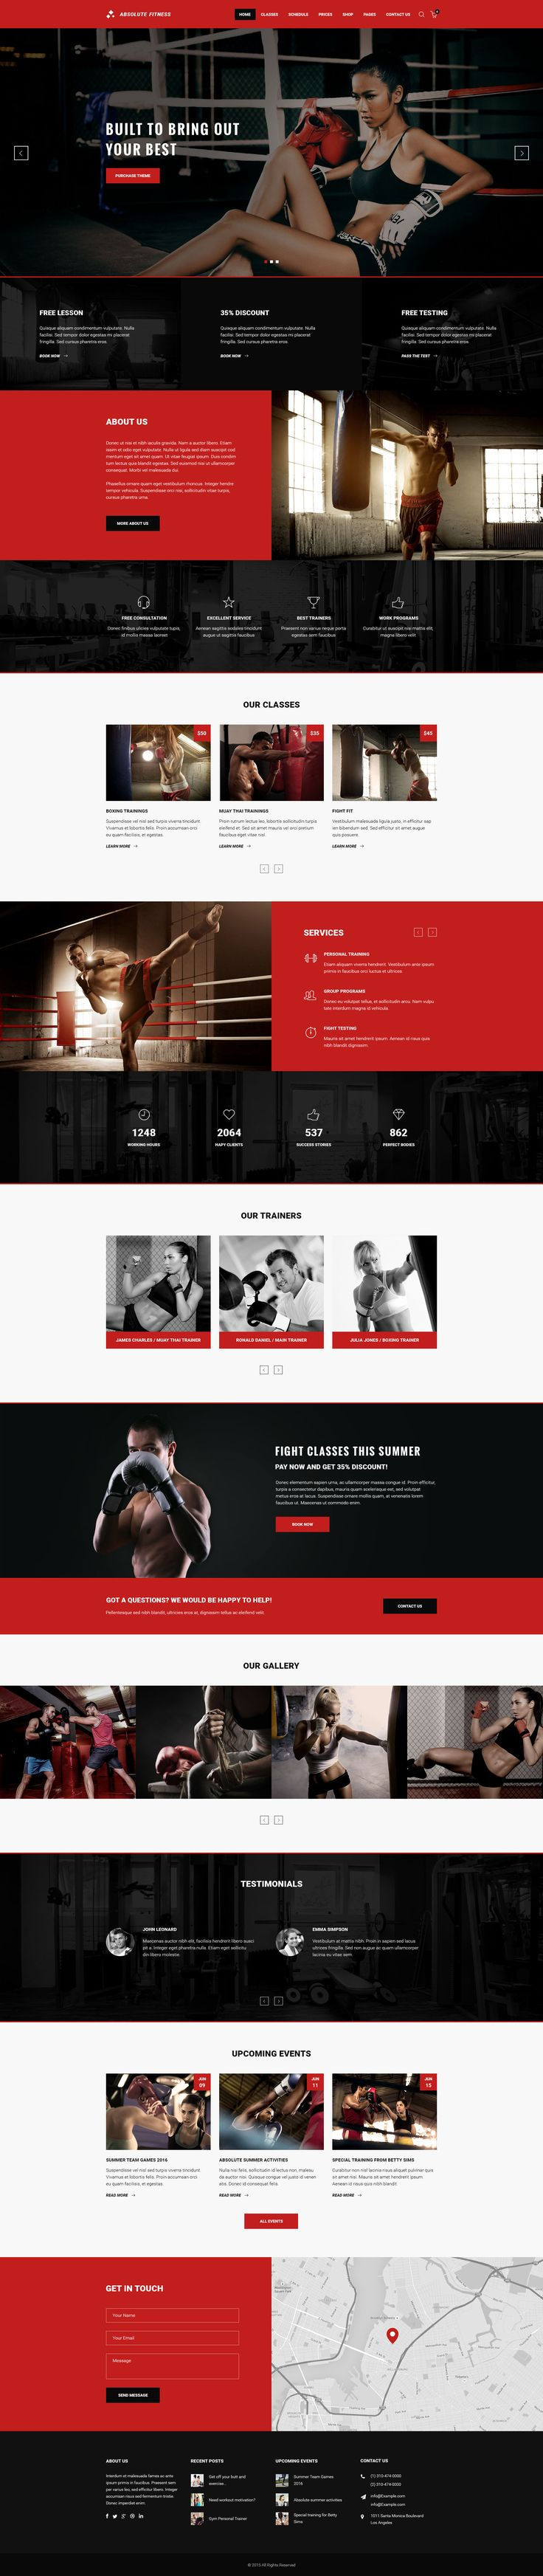 About Absolute Fitness PSD Template    Absolute Fitness – modern and functional PSD Template for sports clubs in different directions: Fitness, GYM, Bodybuilding,   Boxing, Dancing, Yoga, Personal Tra...